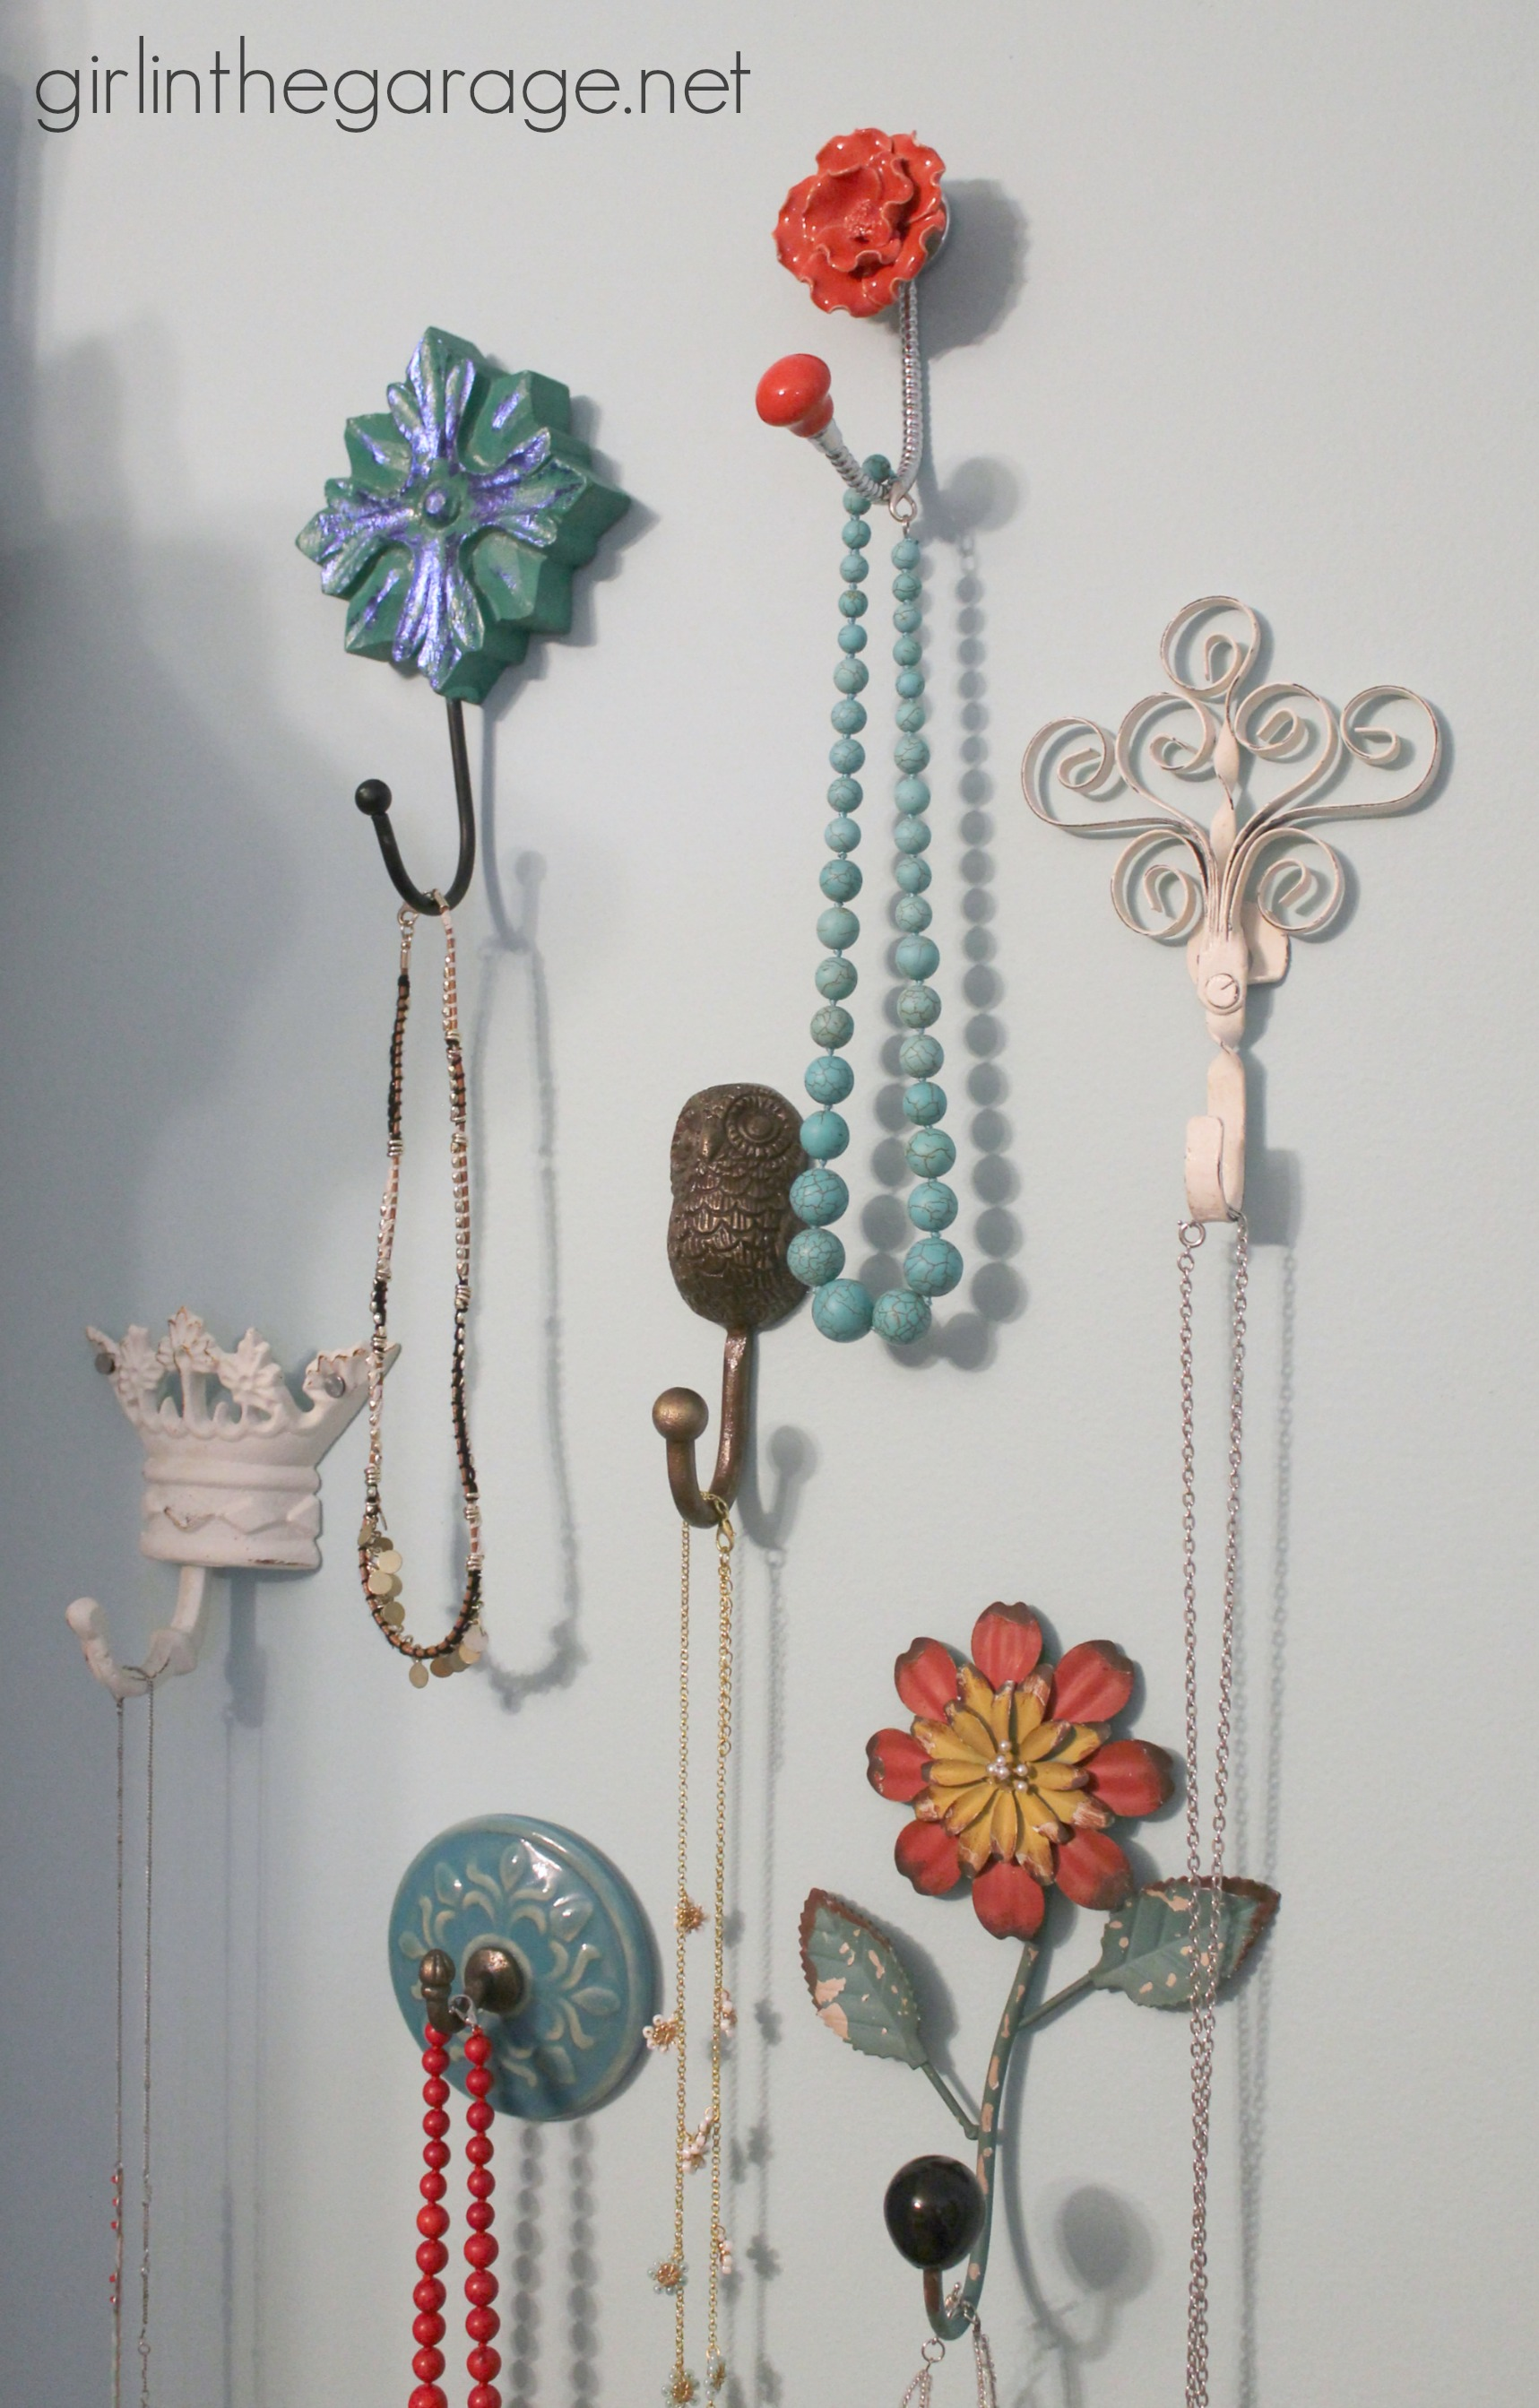 Decorative Wall Hooks as Jewelry Storage | Girl in the Garage®